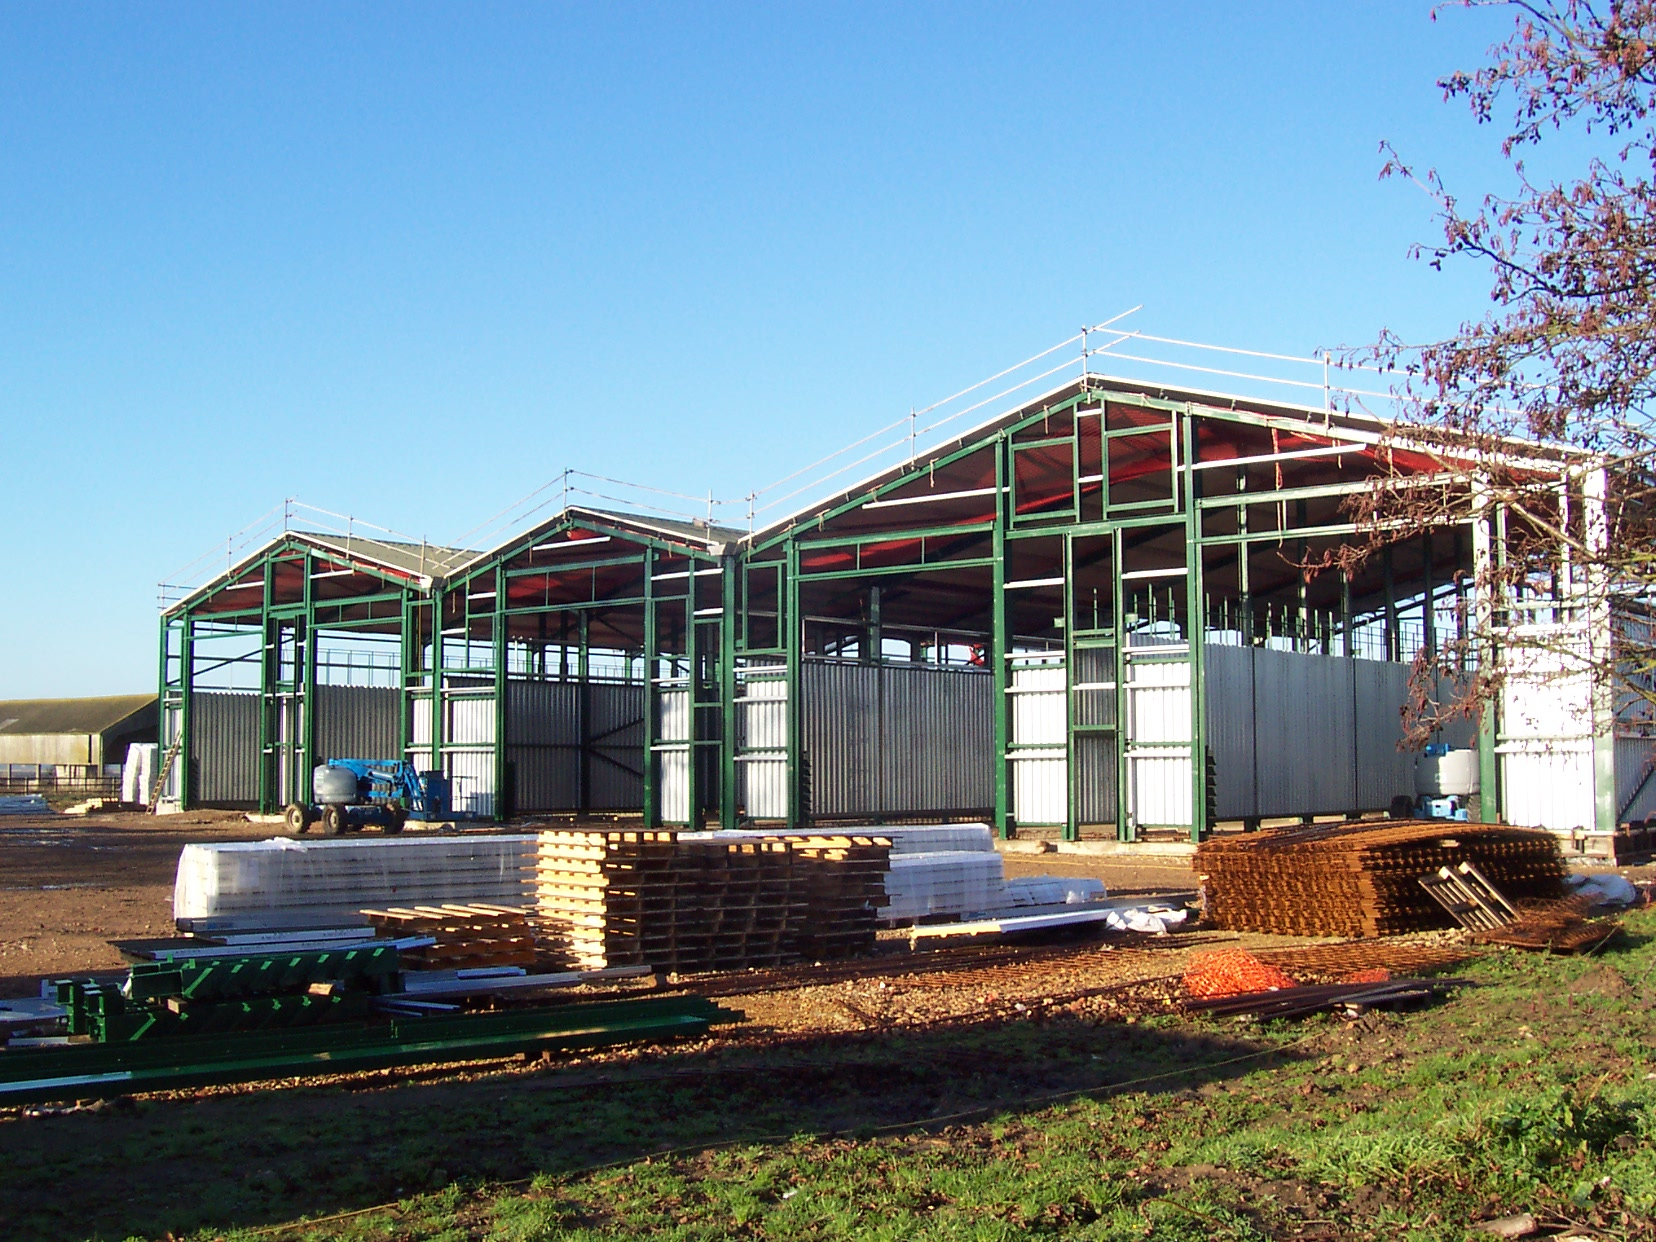 Steel framework agricultural buildings